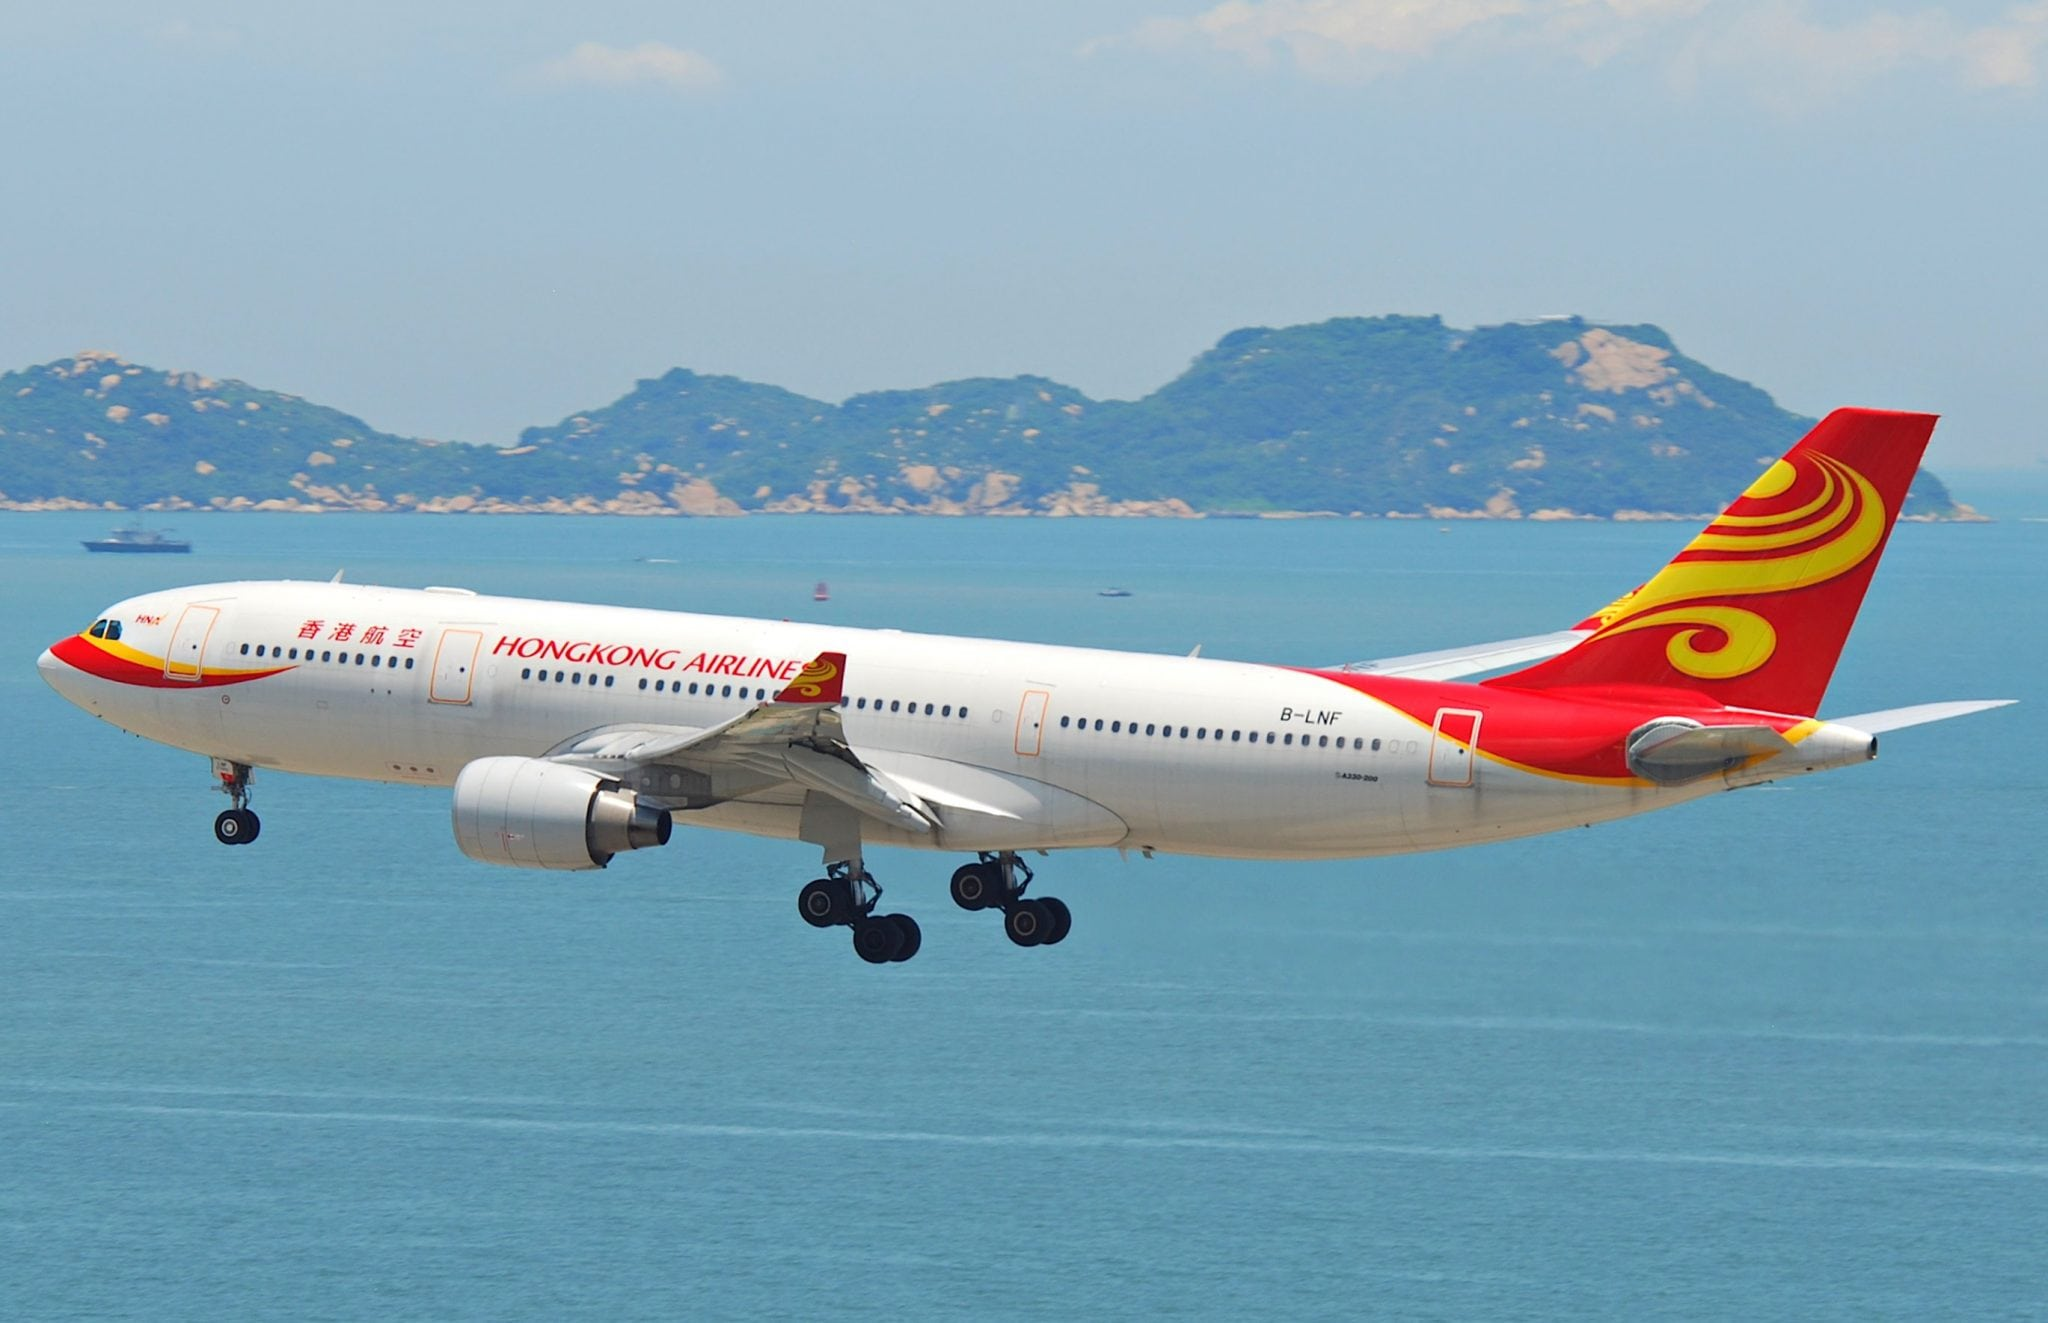 Hong Kong Airlines signed an agreement earlier this summer at the Paris Air Show with AirCom Pacific to install IFEC systems on-board Hong Kong Airlines aircraft